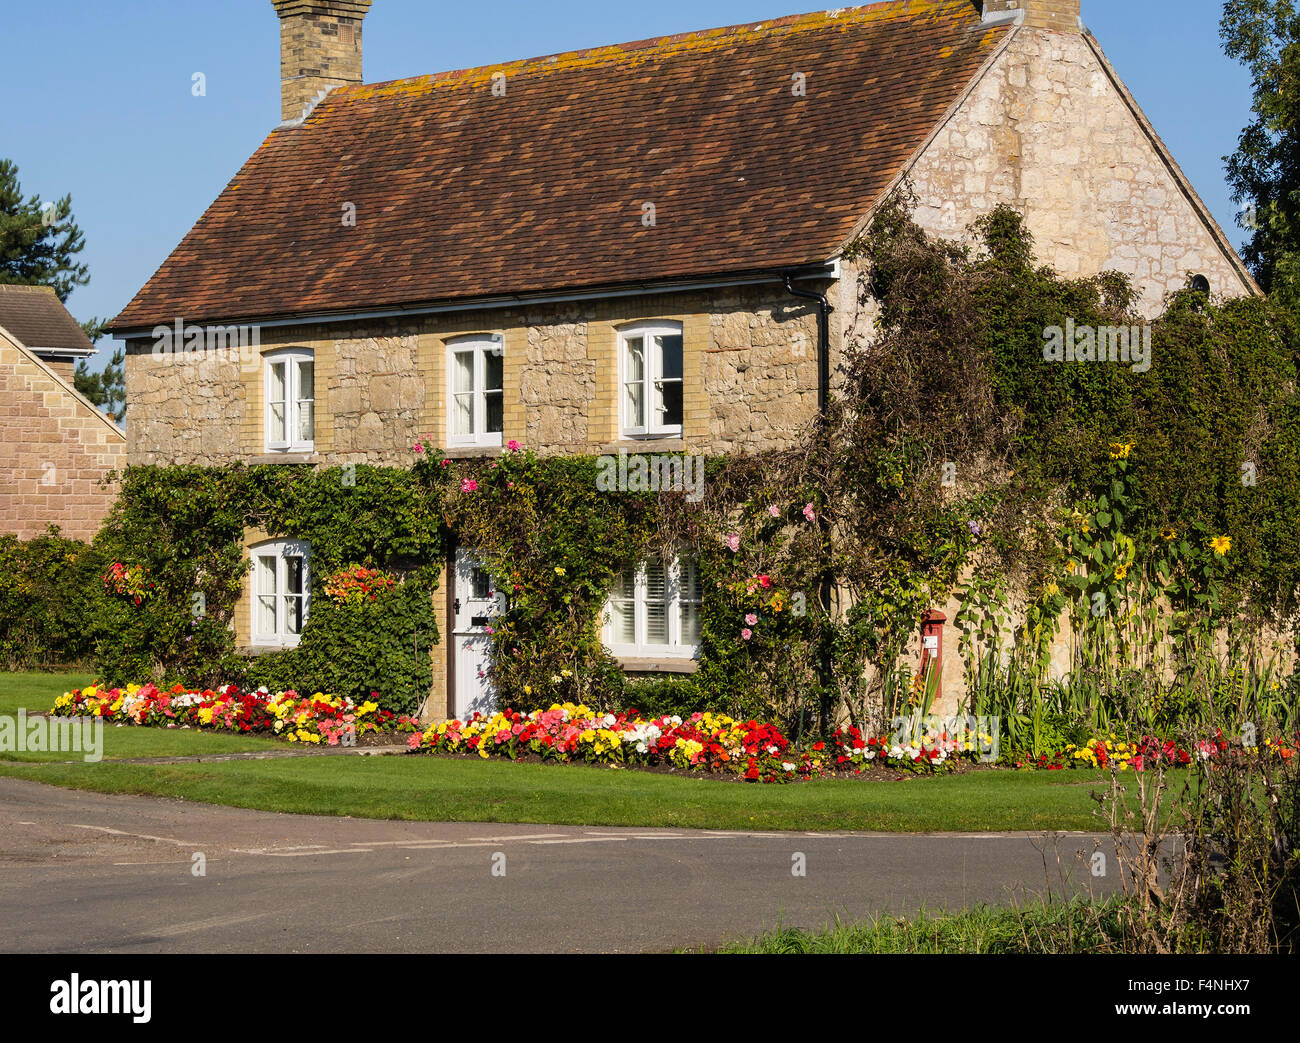 Country Cottage with climbing shrubs and colourful border plants at Newtown, Isle of Wight, England, UK - Stock Image